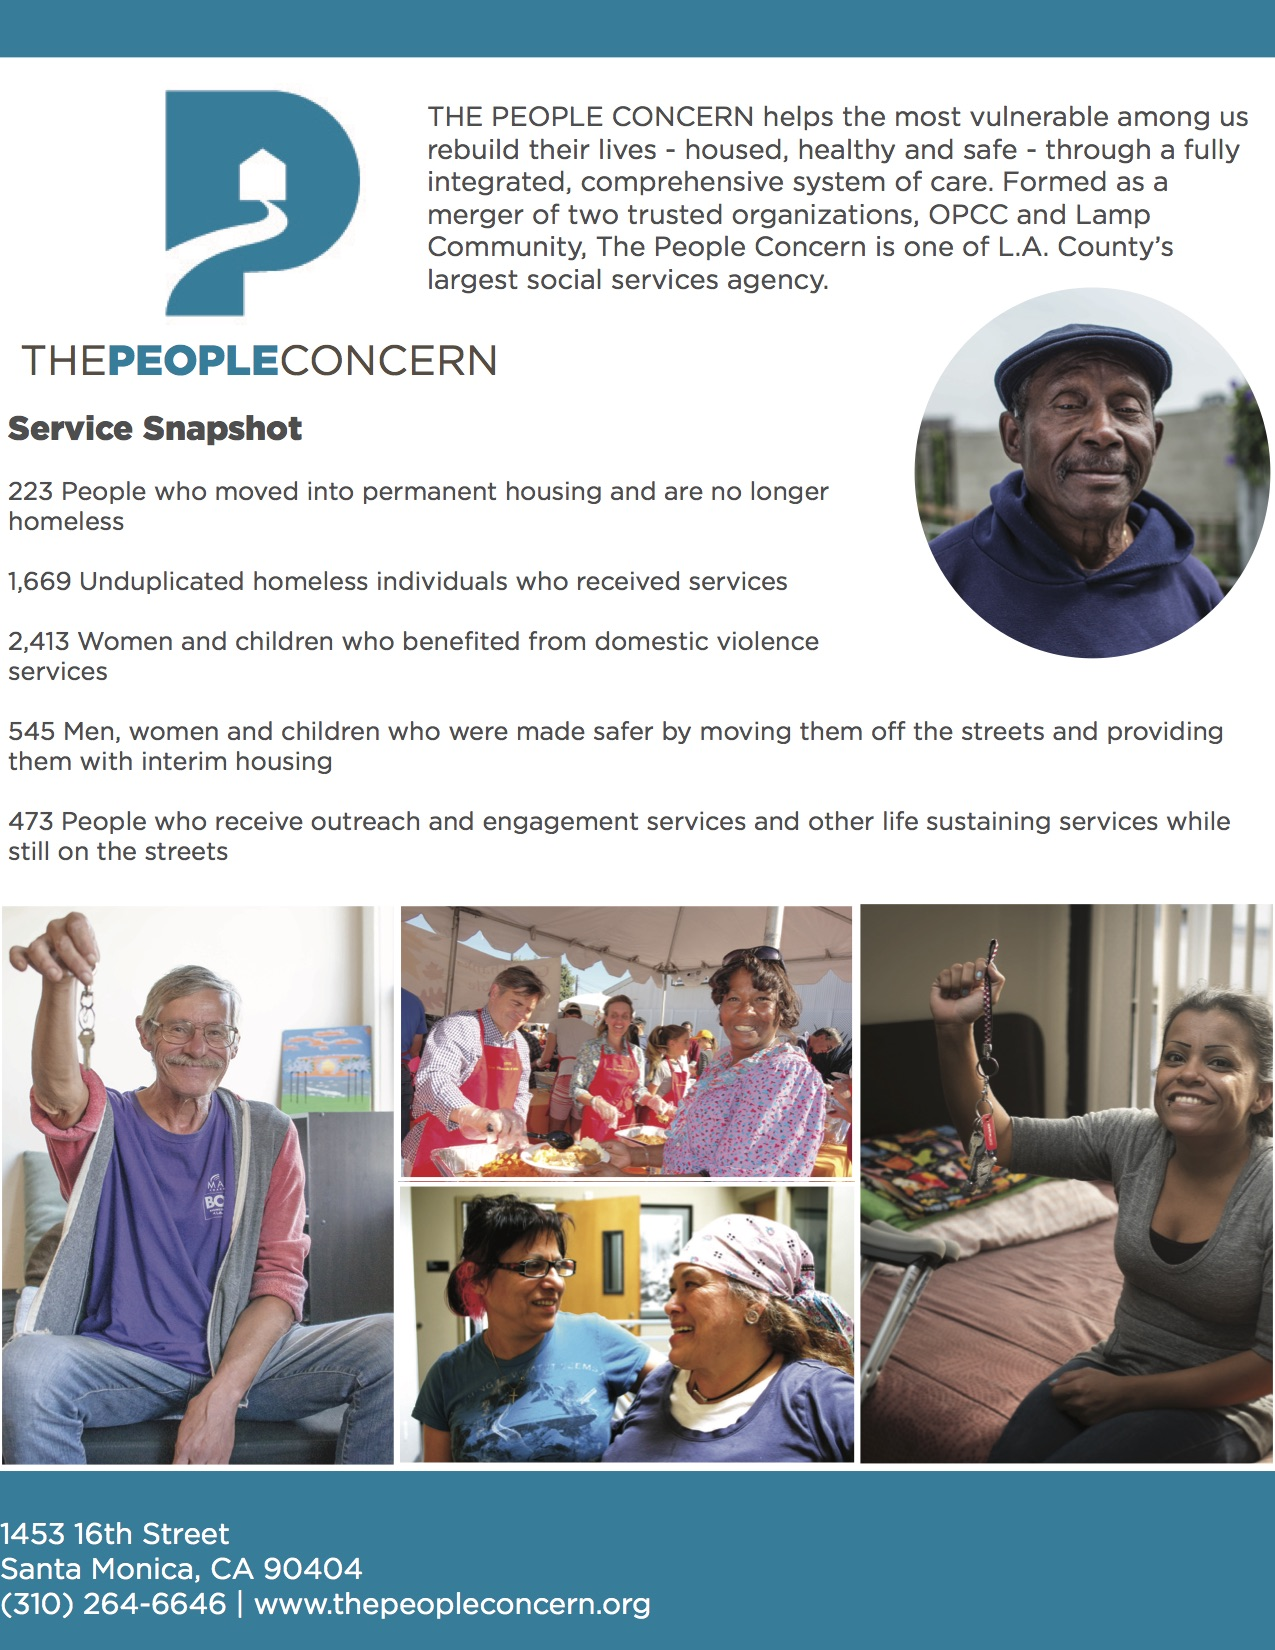 The People Concern Service Snapshot copy